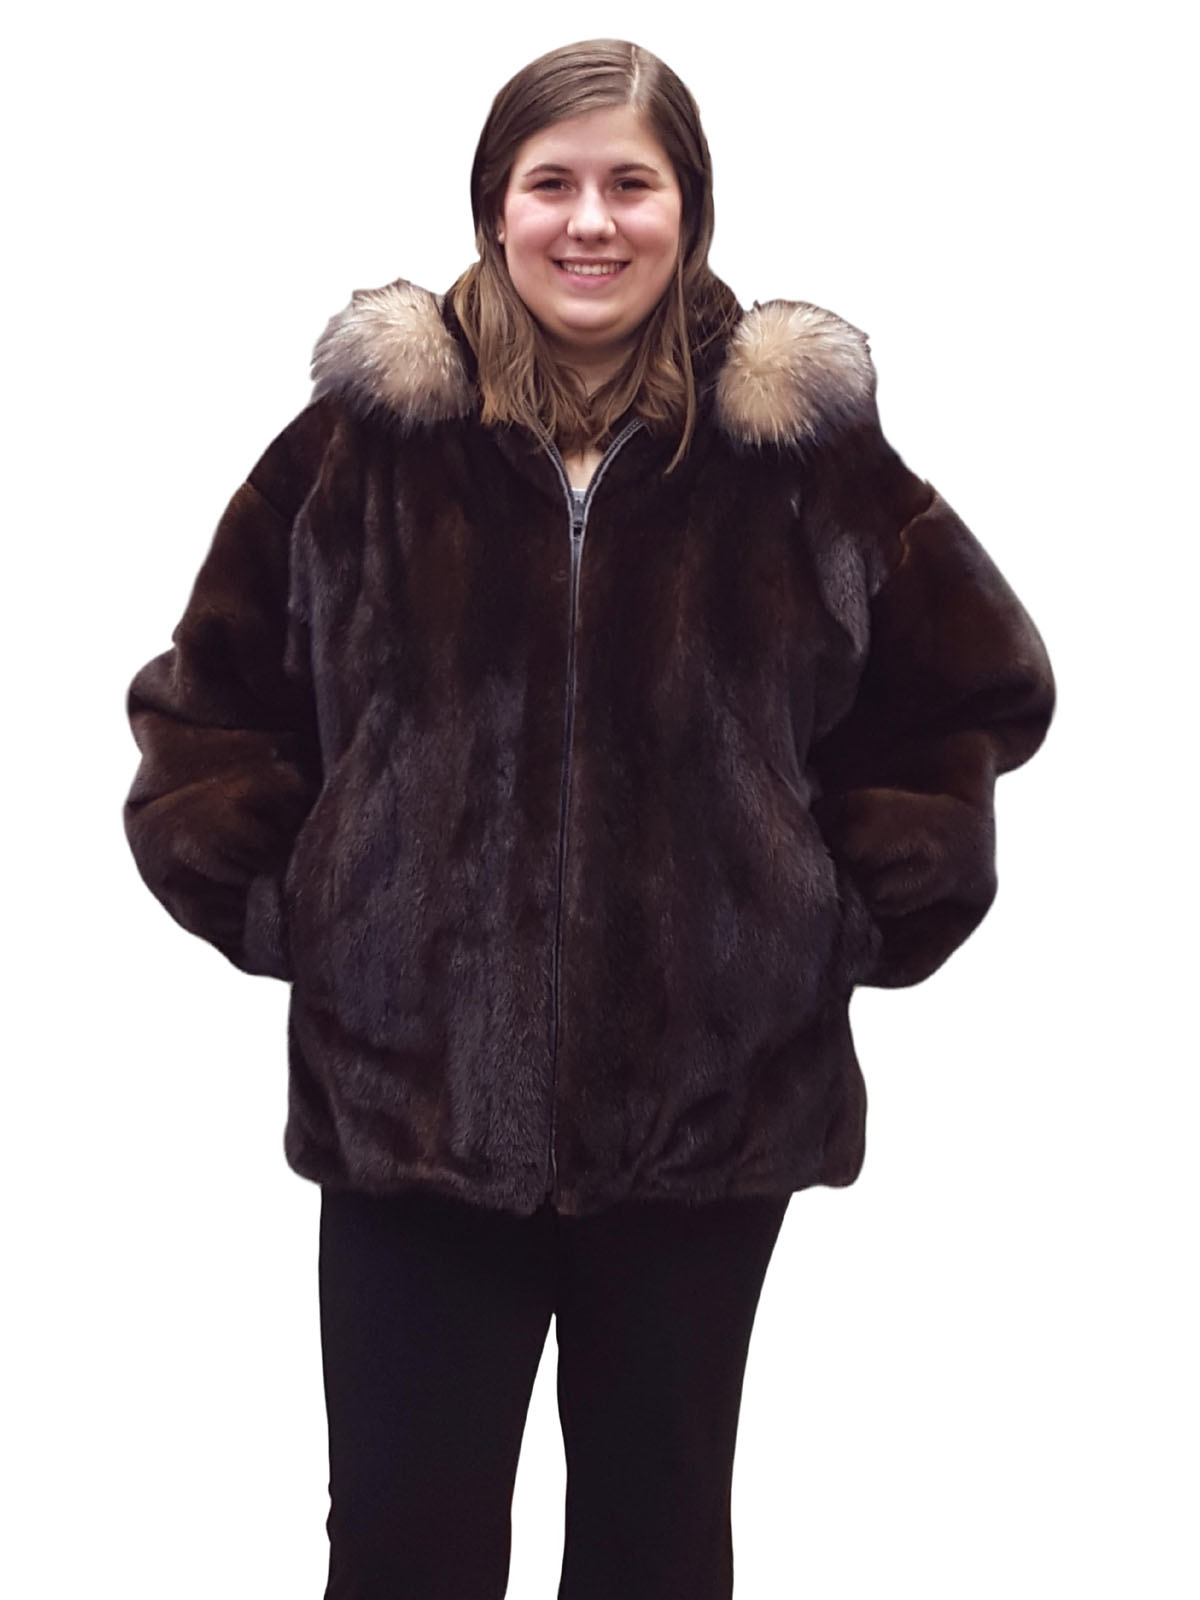 Reversible Mahogany Mink to Cabretta Lamb Leather Zip Jacket with Crystal Fox Trimmed Collar